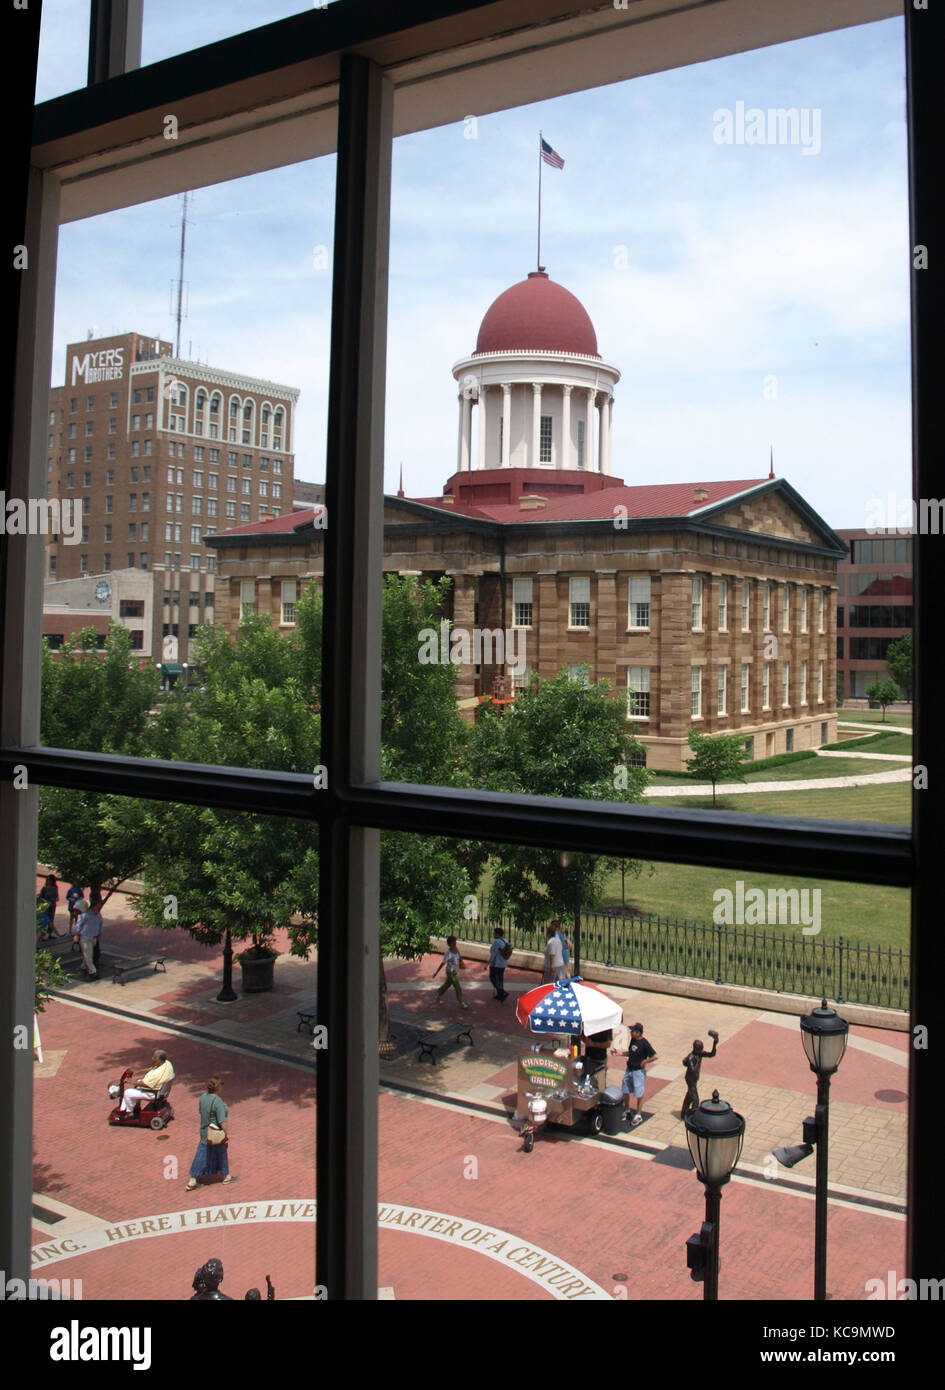 The Old State Capitol in Springfield, Illinois, seen through a window of the former law office of Abraham Lincoln - Stock Image